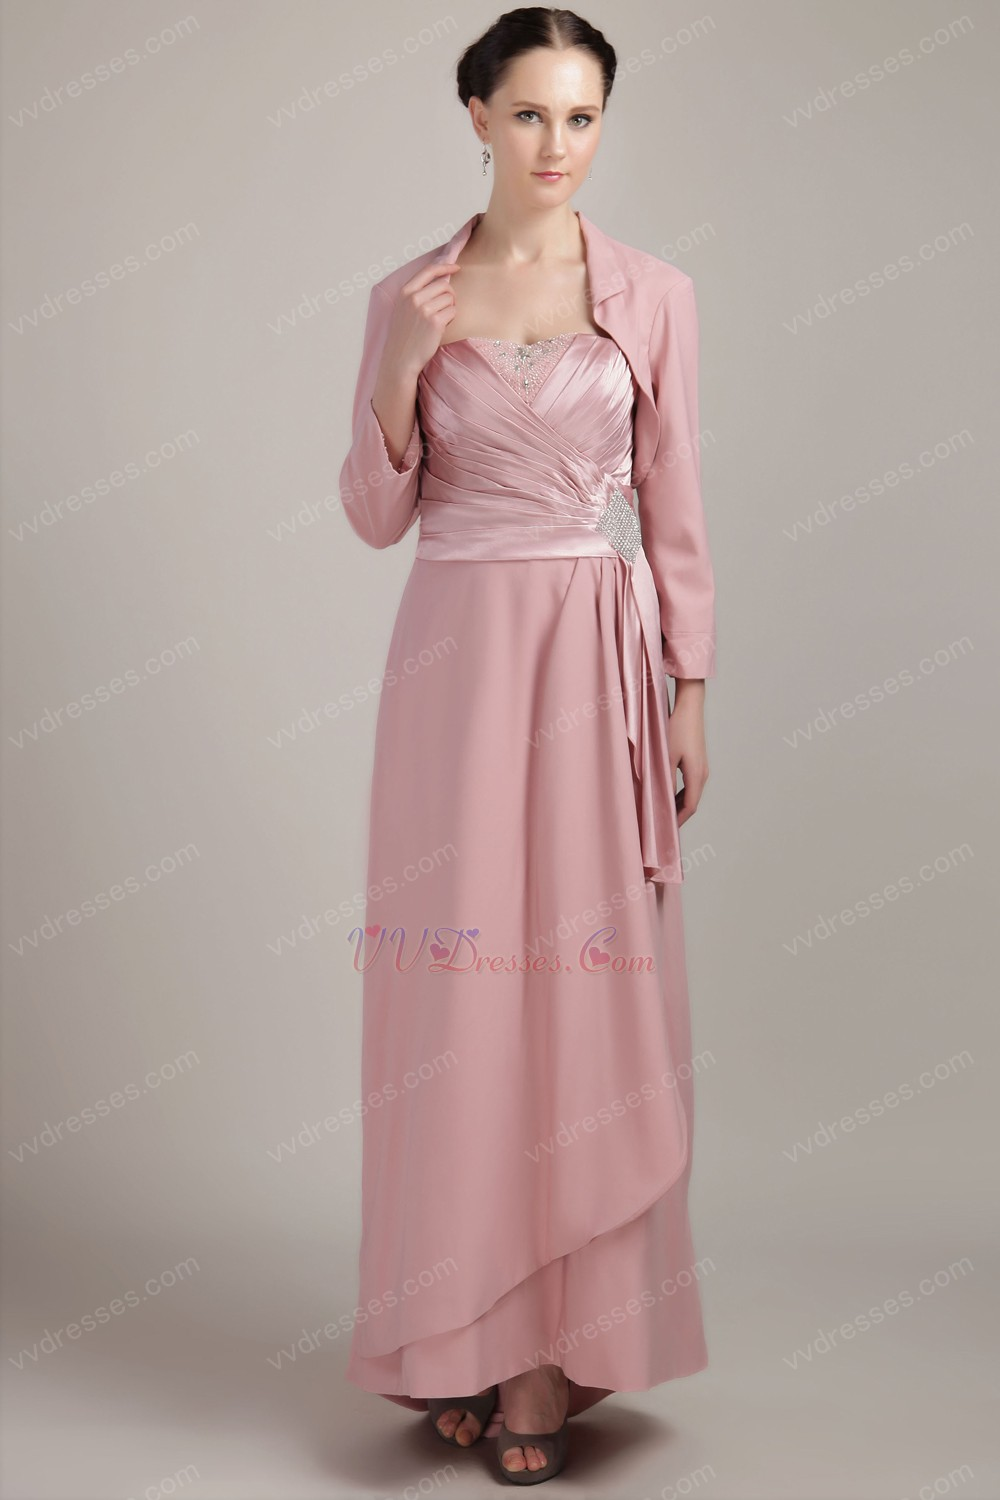 Lite Pink Mother of the Bride Dresses